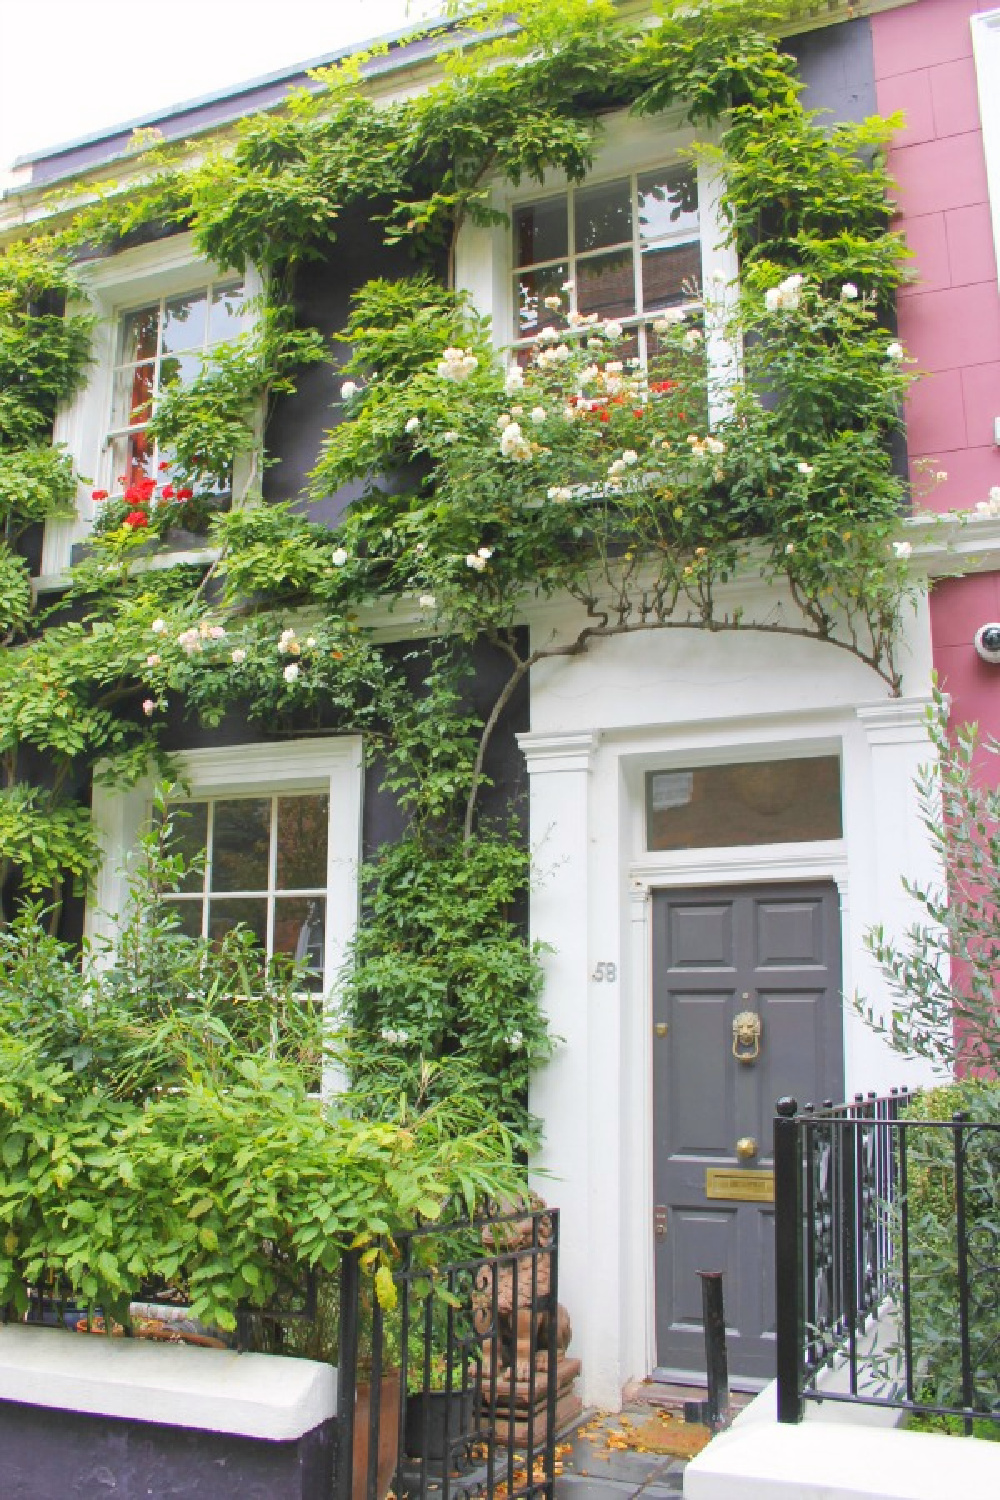 Climbing vines and blooms on a London pink house exterior with grey front door - photo by Hello Lovely Studio.